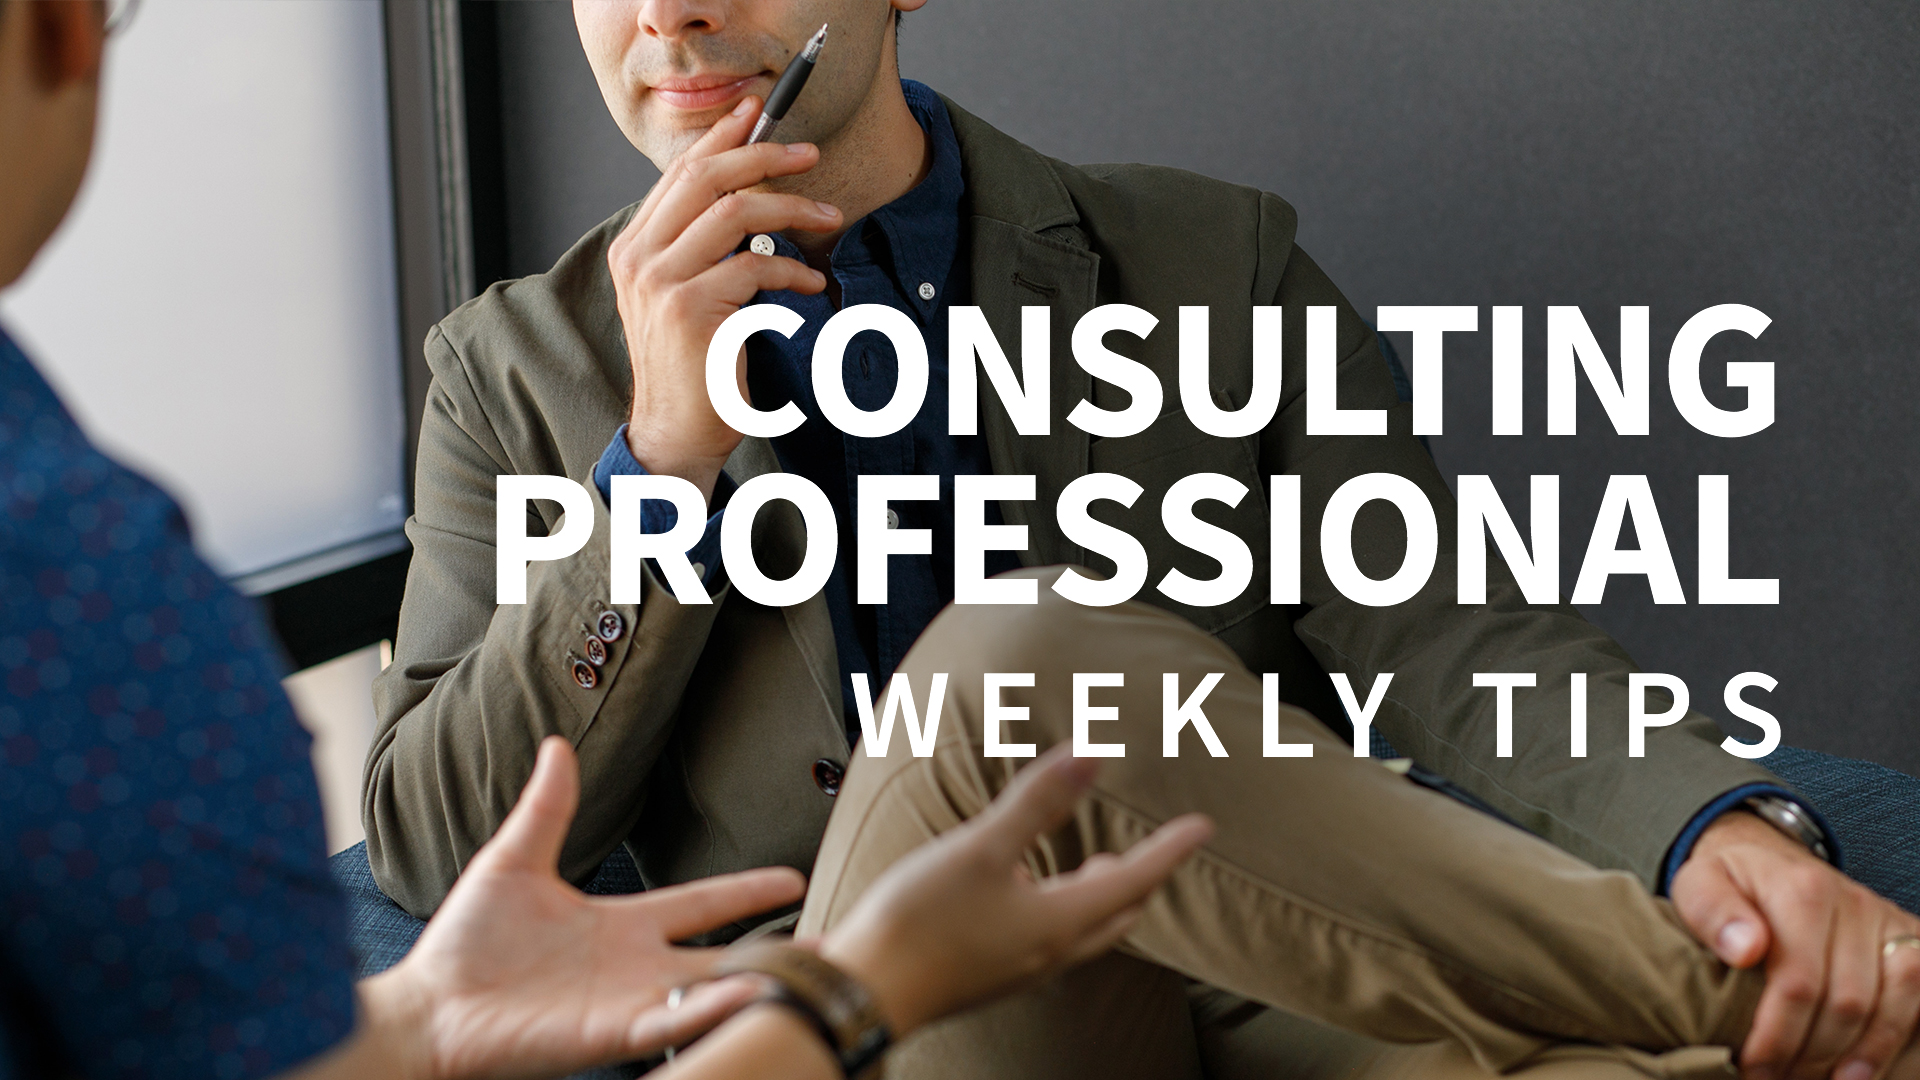 Know when a project is about to end: Consulting Professional Weekly Tips